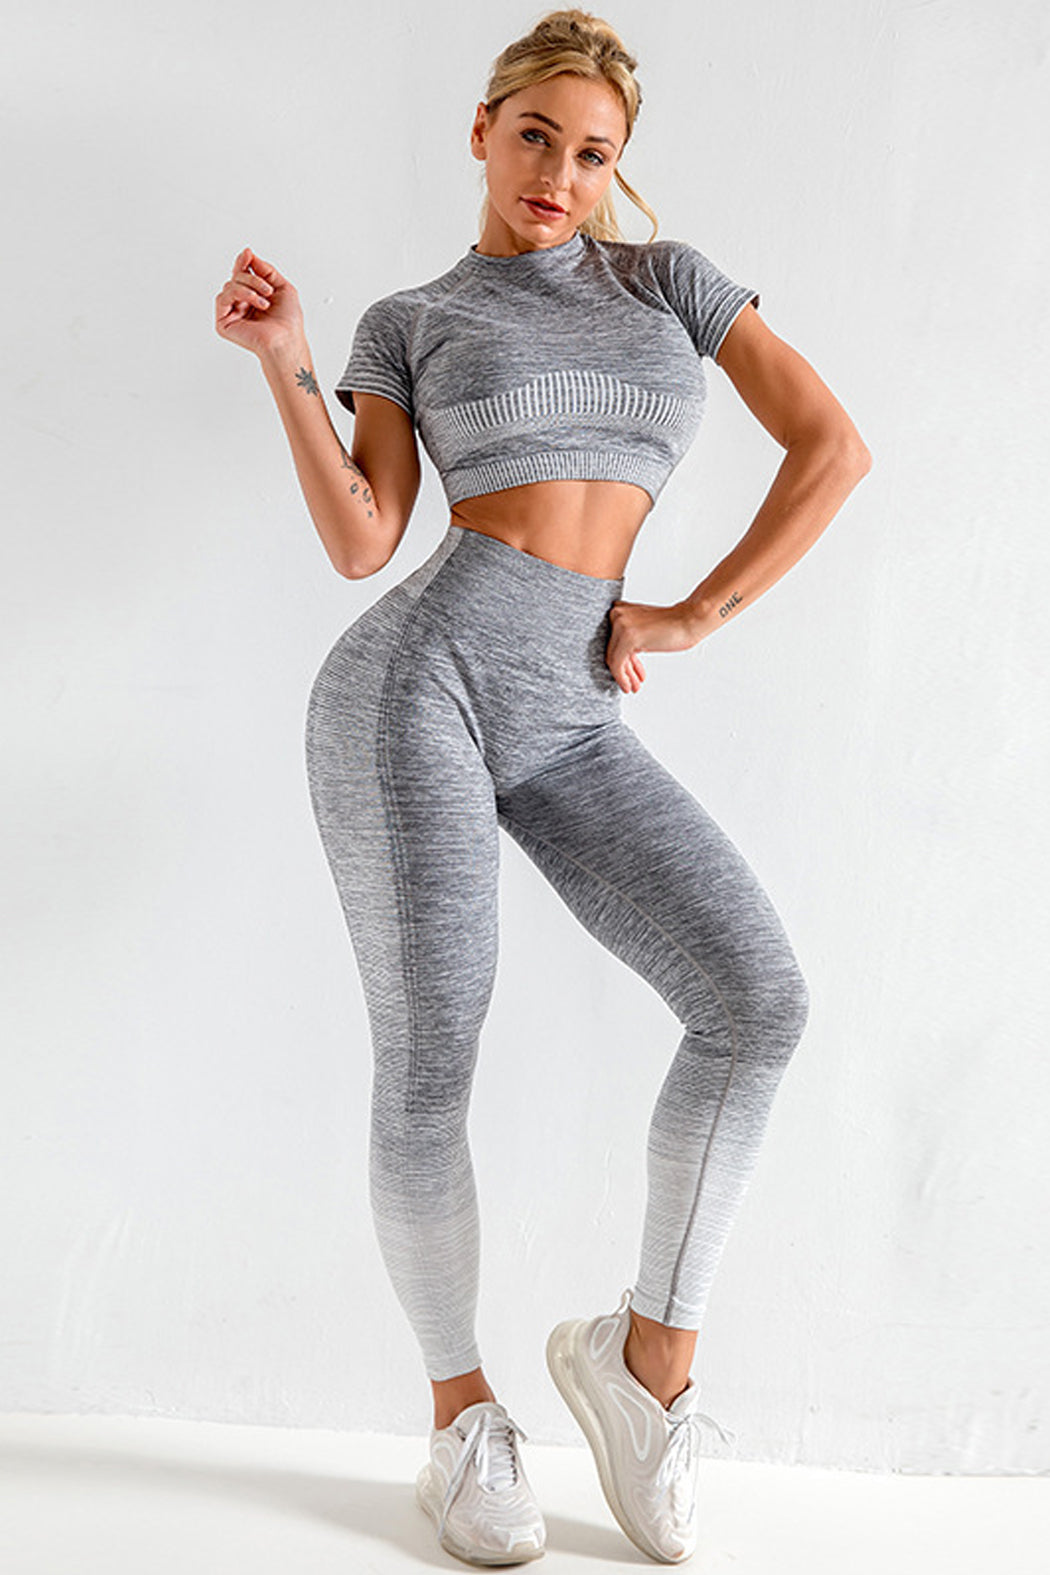 Women's Two Piece Sportswear Set - Matching Top and Leggings